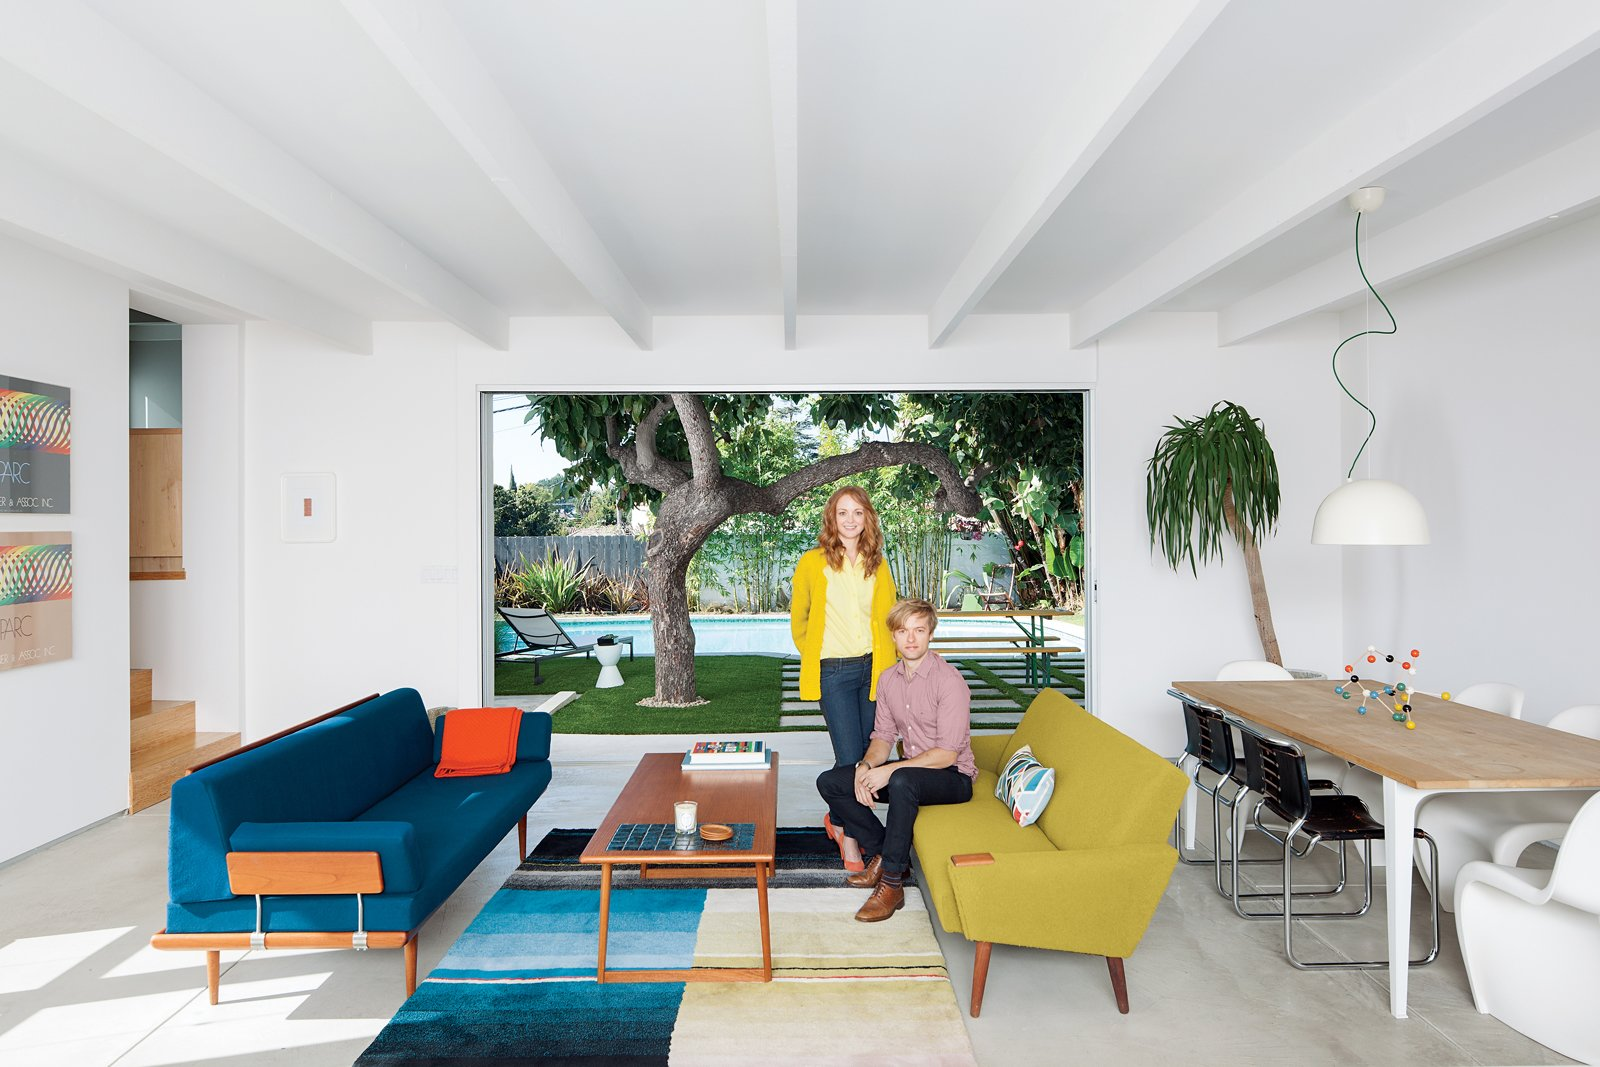 Glee star Jayma Mays and actor Adam Campbell in the living room of their Los Angeles home.  Photo 2 of 13 in The Modern Renovated Home of Glee Star Jayma Mays